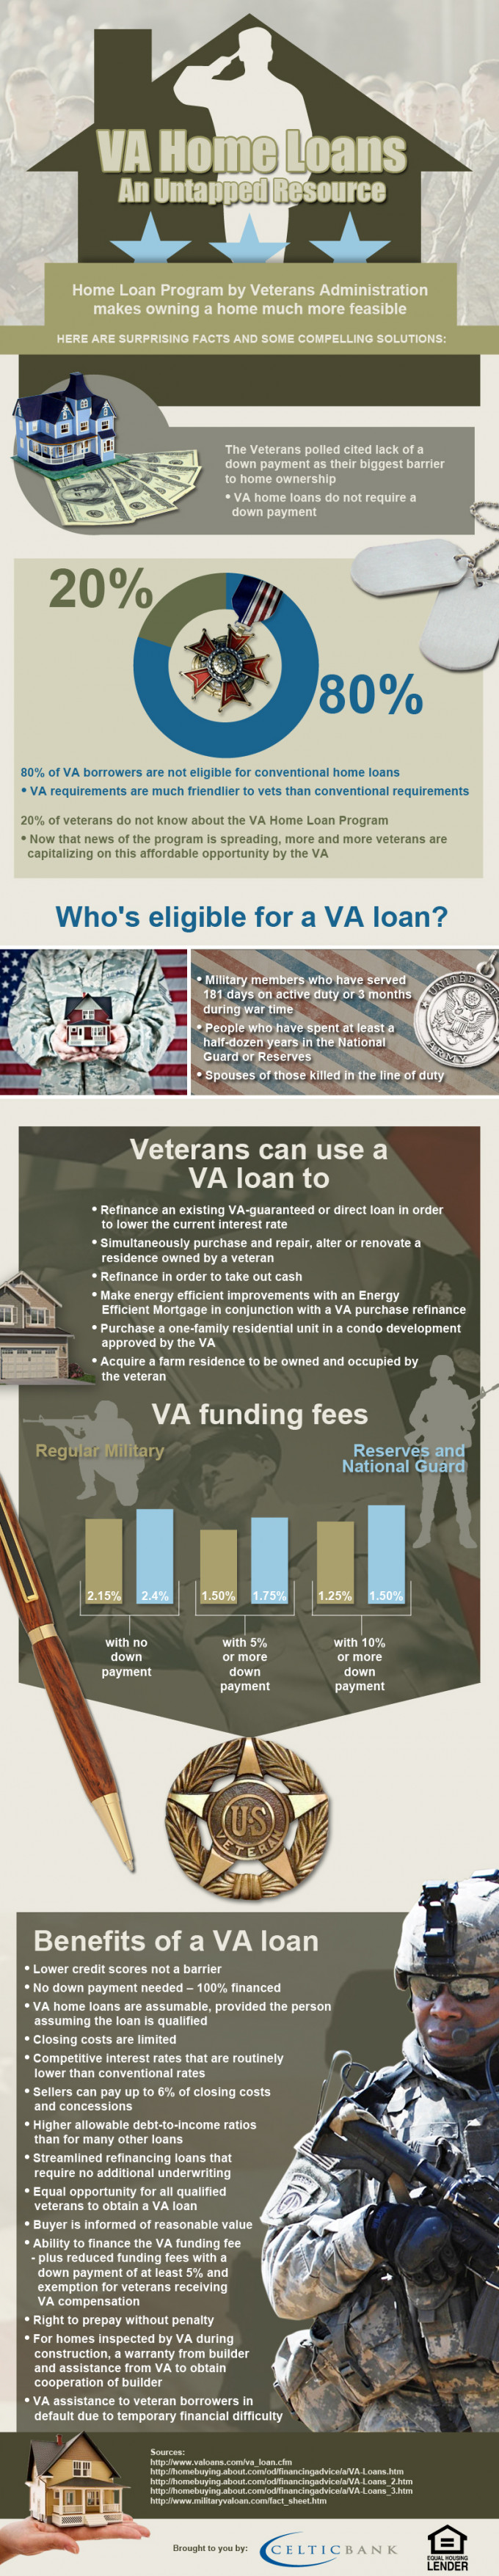 VA Home Loans An Untapped Resource